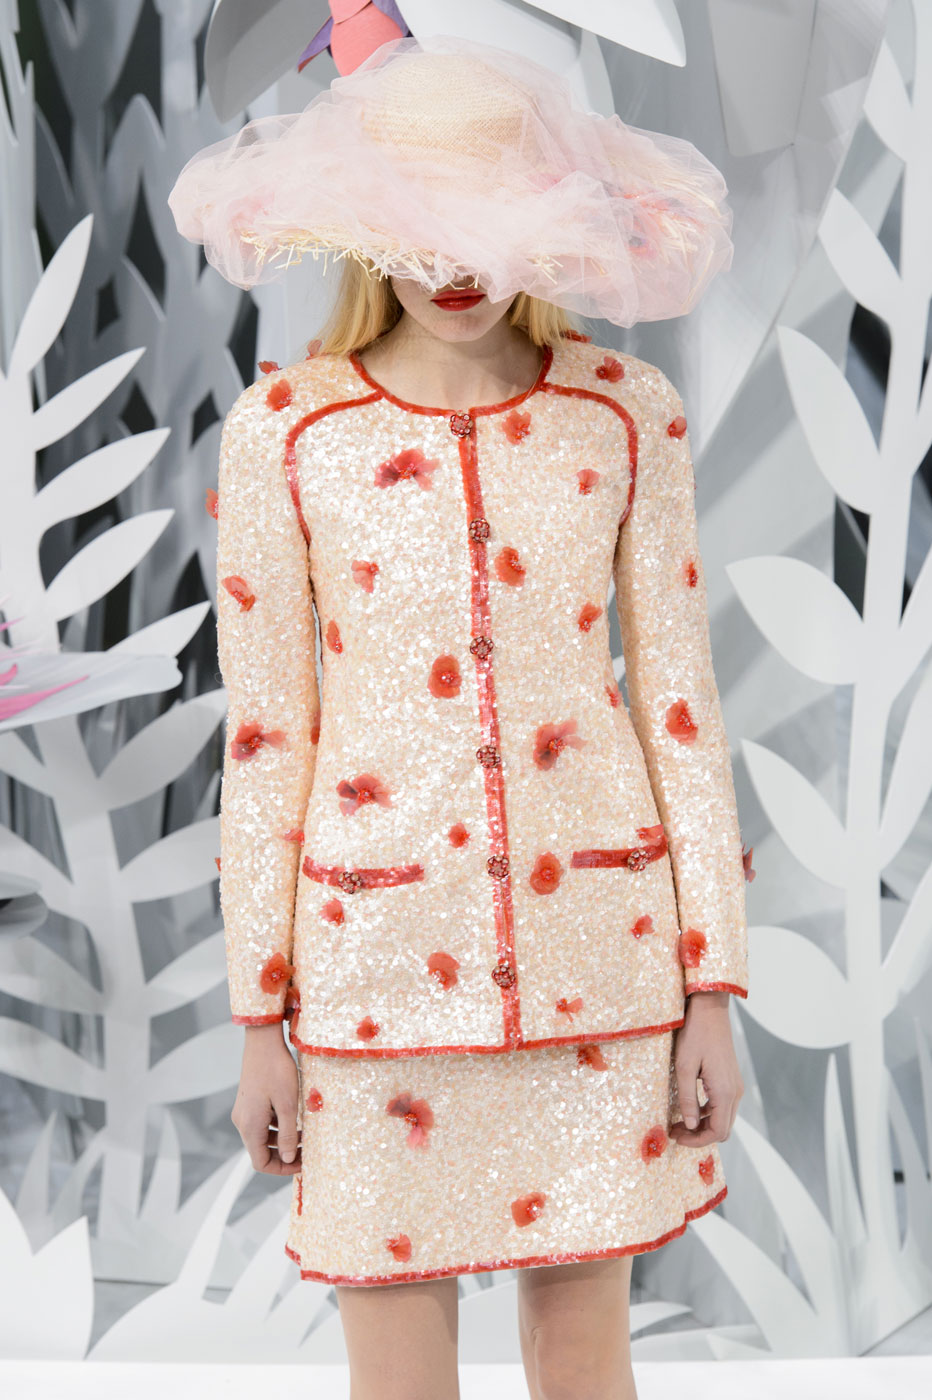 Chanel-fashion-runway-show-haute-couture-paris-spring-summer-2015-the-impression-063